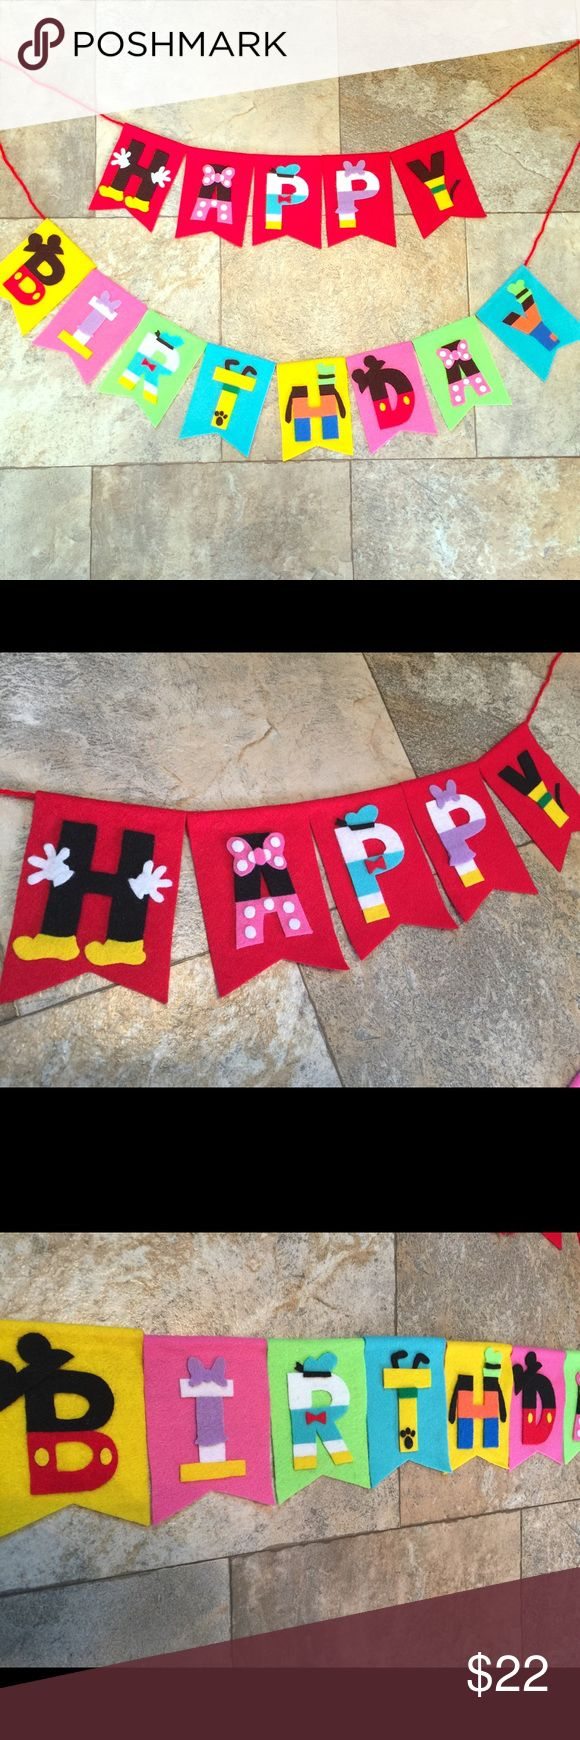 Mickey Mouse house club happy birthday banner Handmade Mickey Mouse club house happy birthday banner made by felt (not paper). I am happy to make customized banner with any colors or characters you like for birthday party decorations or nursery & kids room decor. Each banner is about 3 1/2 x 5 inch. Checkers my list to see more options! Price is firm except bundle! Bundle discount is 10 percent! Tag: Disney, Mickey, Minnie, Donald Duck, Daisy, Pluto, goofy, baby photo props, home decor…